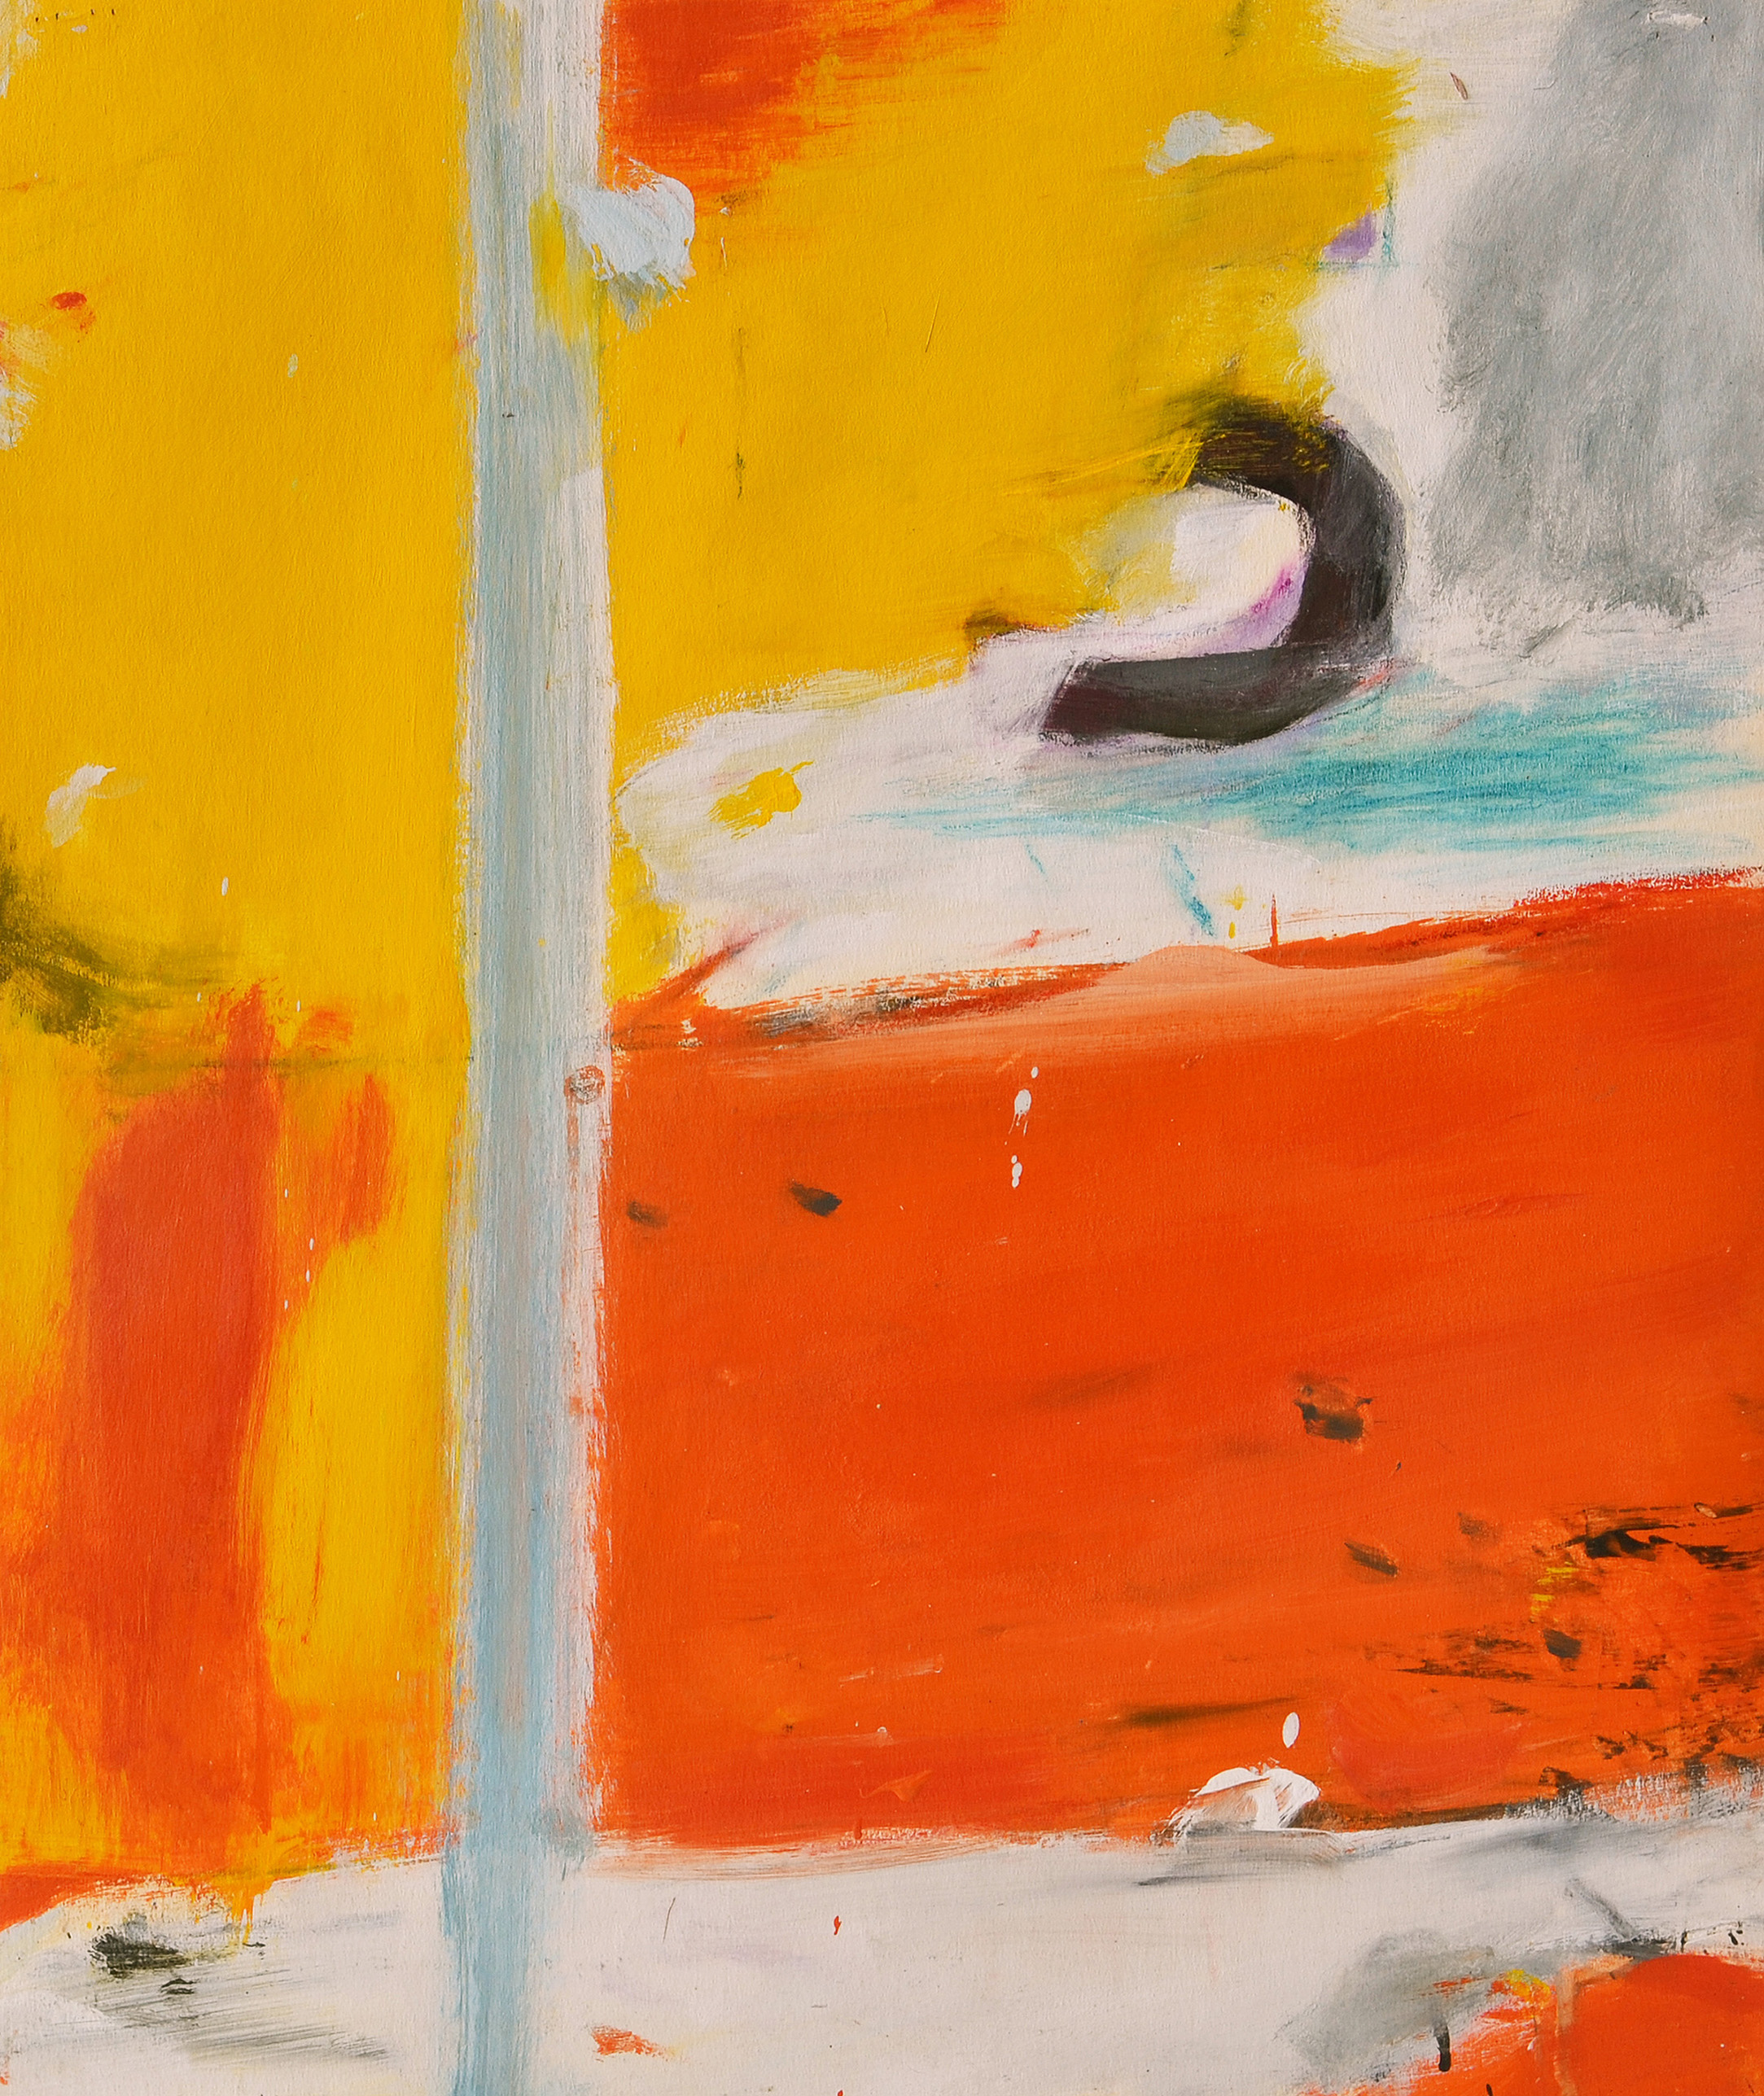 Untitled ,  Gouache on casein paper, c. 1959, 17 3/4 x 15 inches